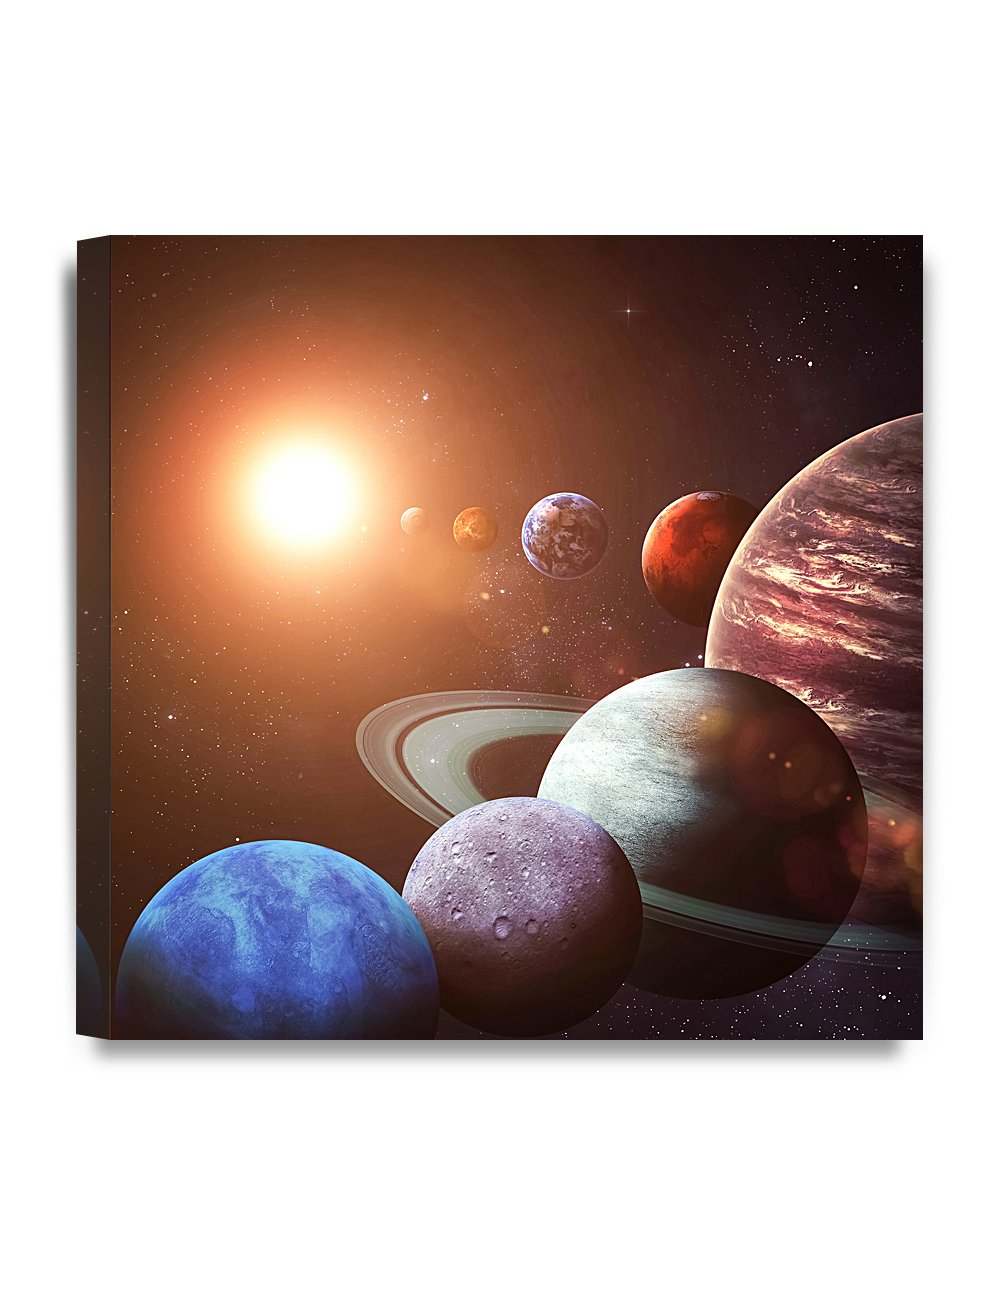 DecorArts Canvas objects Planets 24x24x1 5 Image 1